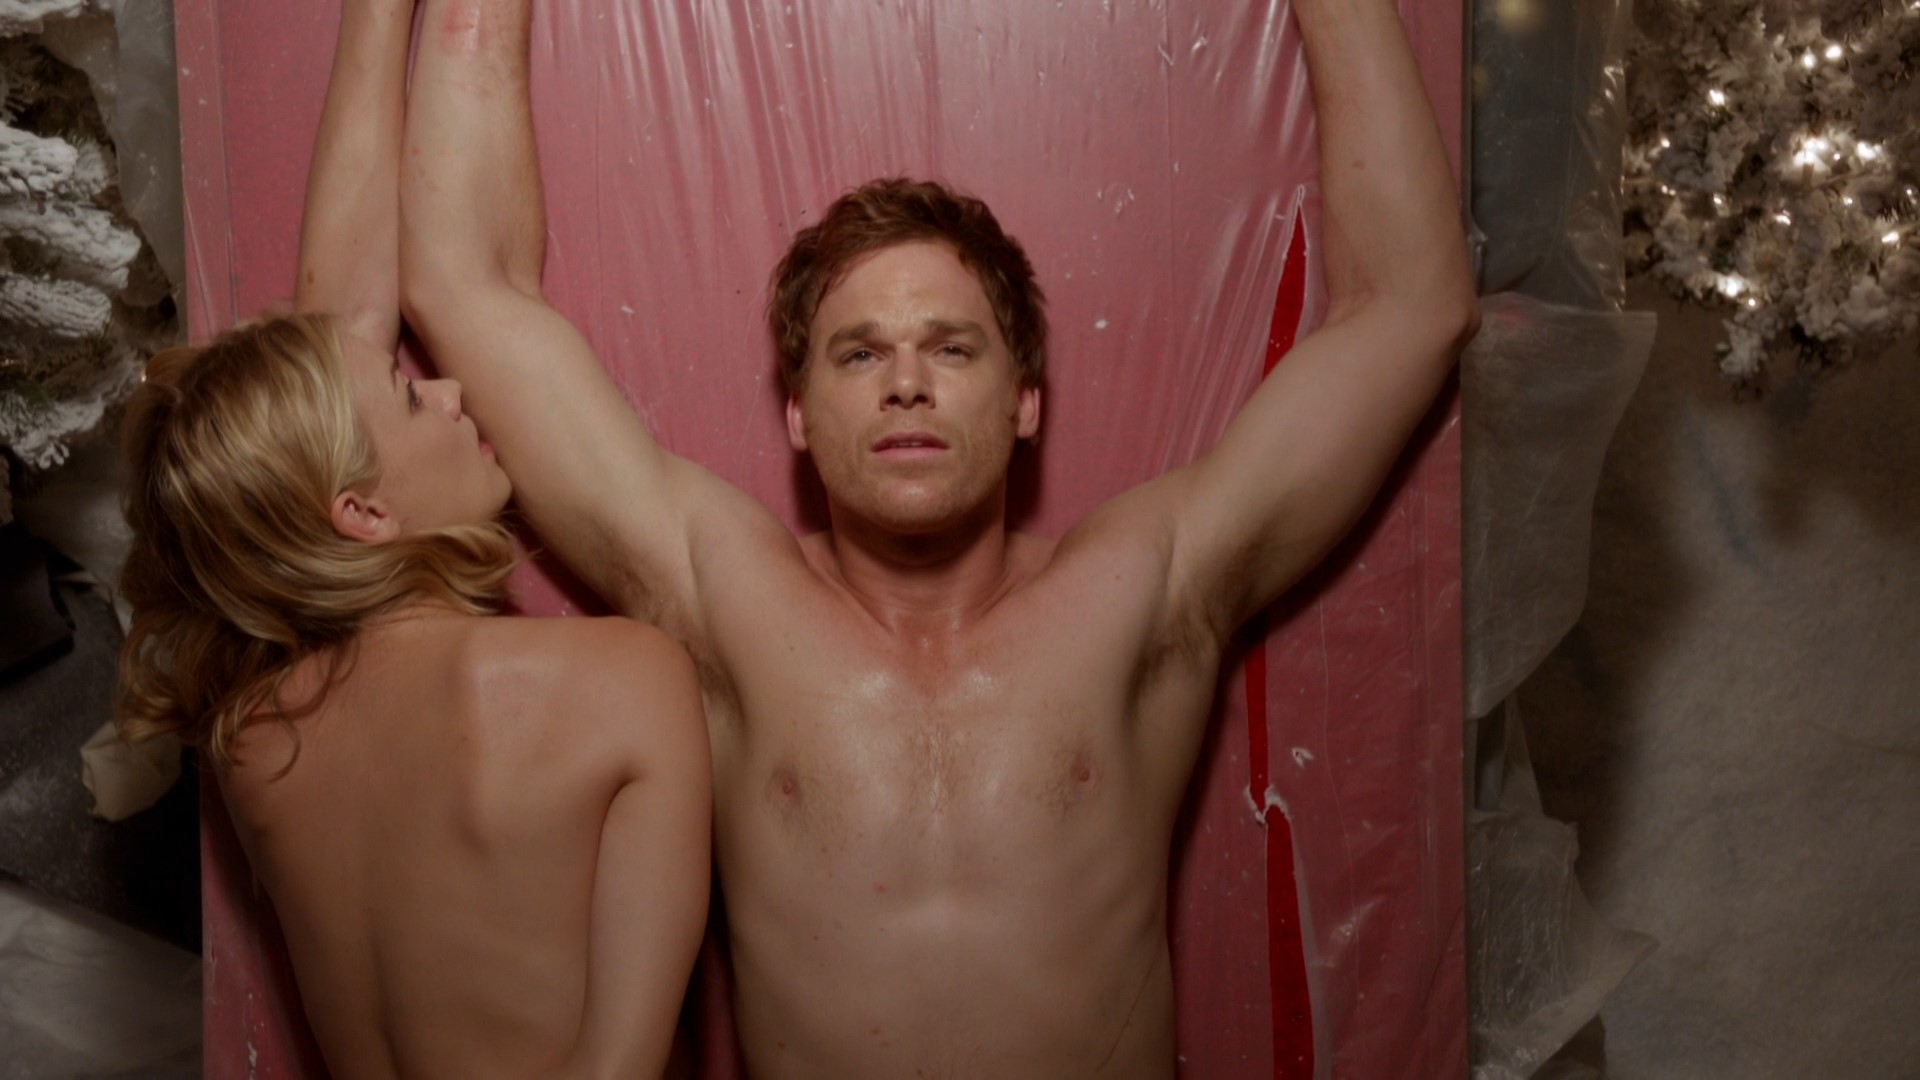 Dexter girls nude star fakes crowning